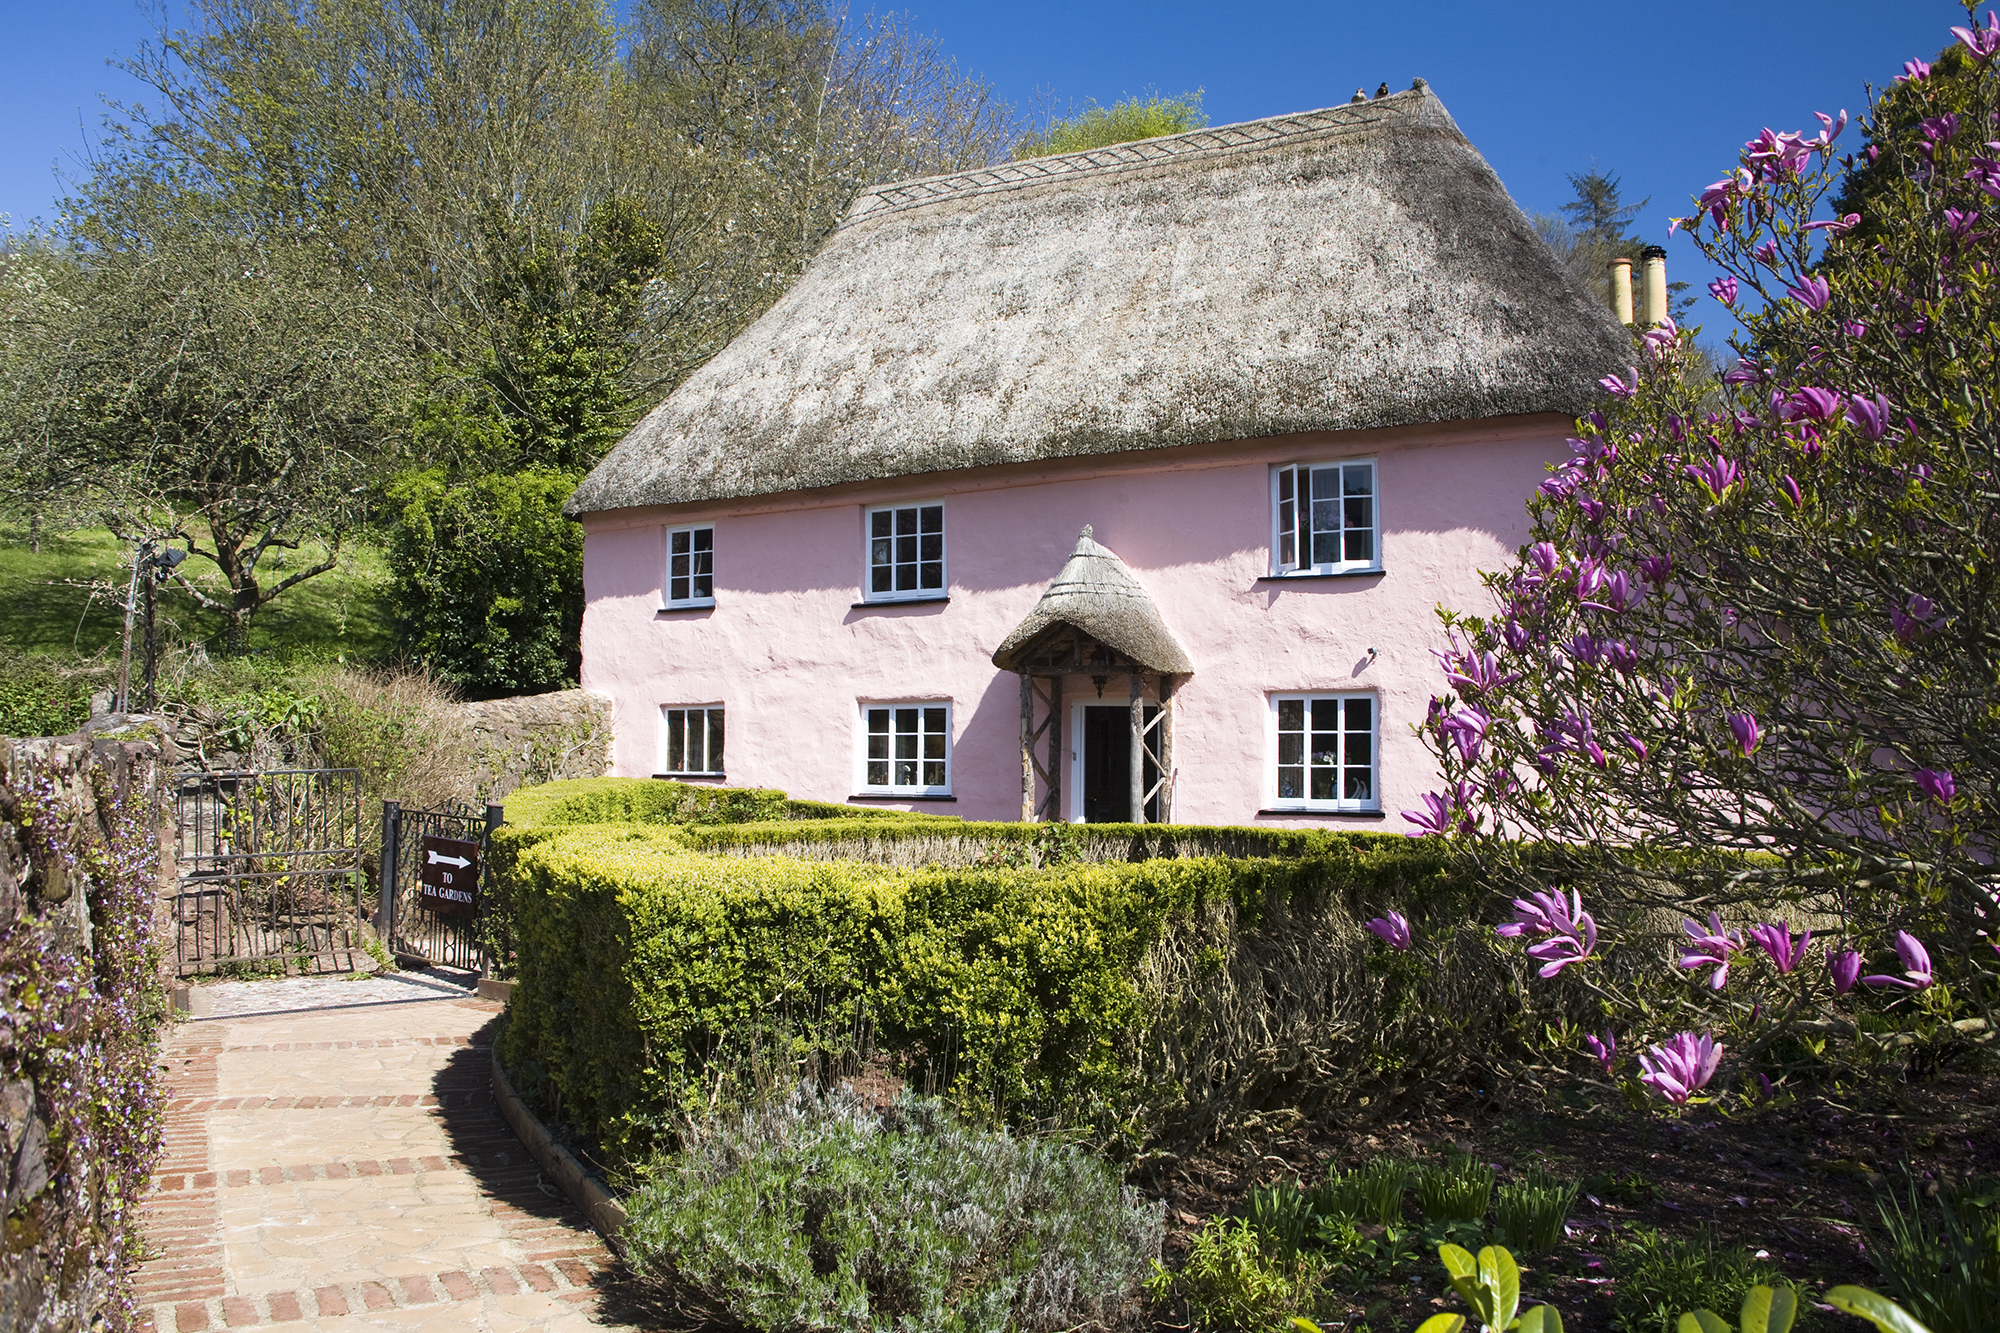 14 Thatched Cottages You Ll Want To Move Into Immediately